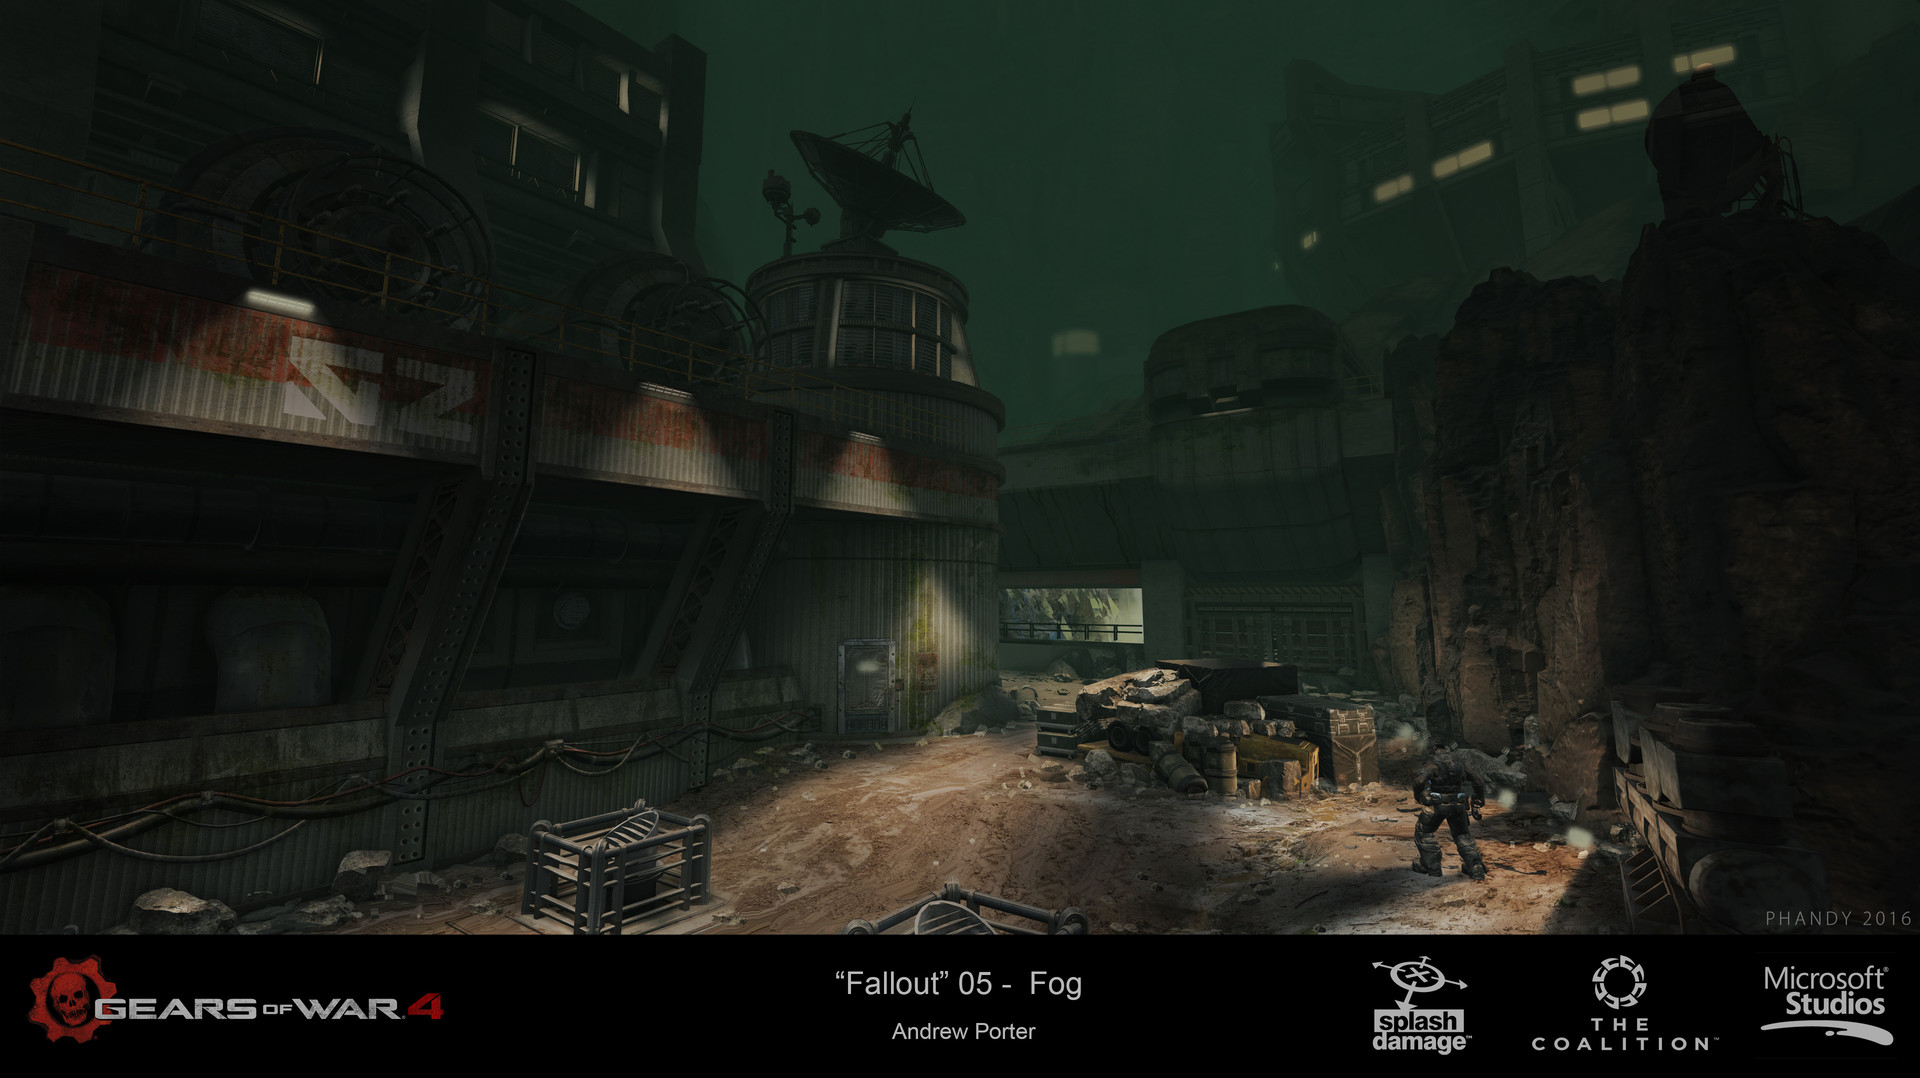 Andrew porter phandy2016 gow4 fallout05